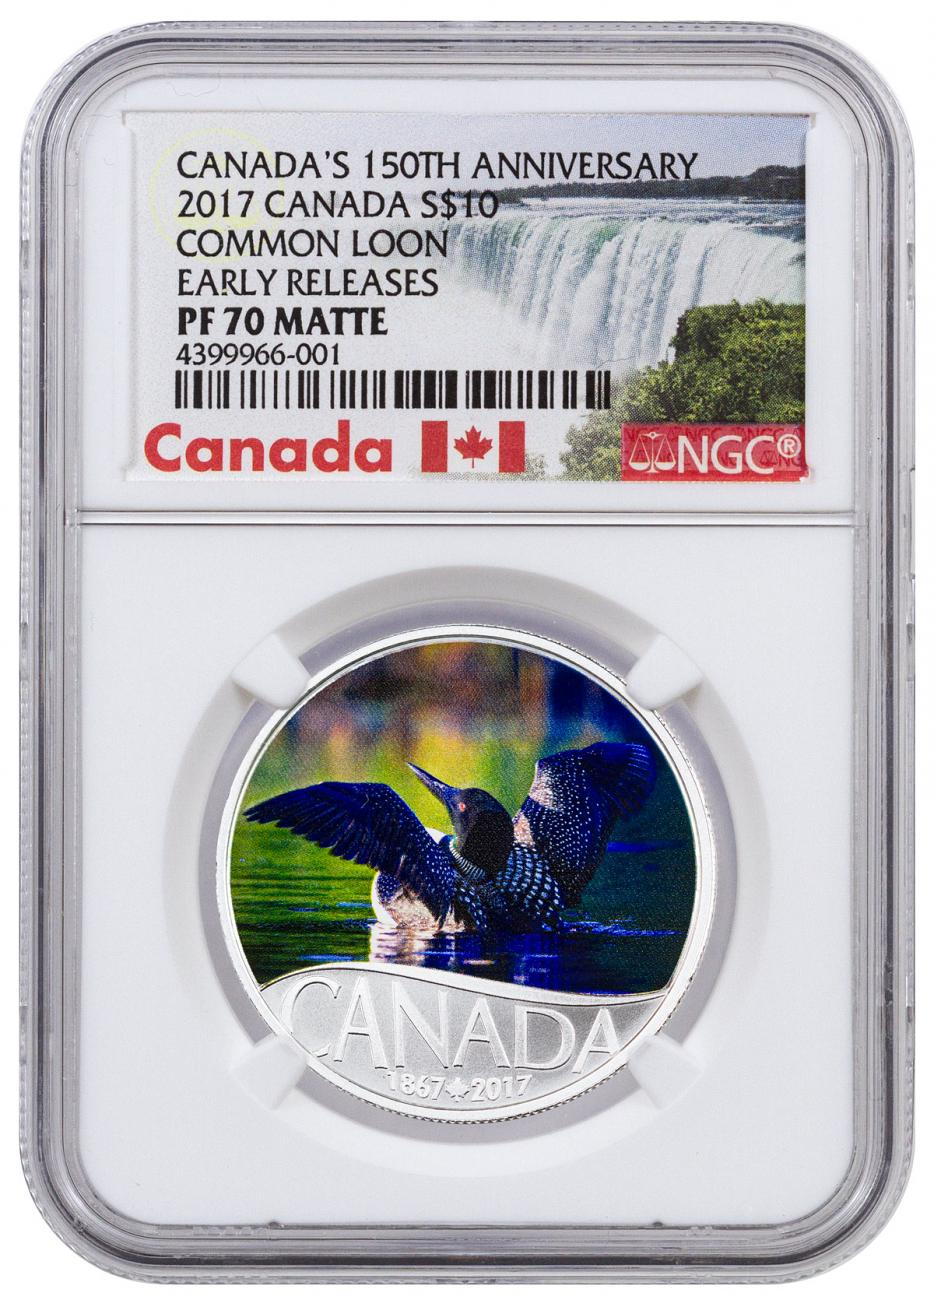 2017 Canada $10 1/2 oz. Colorized Matte Proof Silver Celebrating Canada's 150th - Common Loon - NGC PF70 Early Release (Exclusive Canada Label)